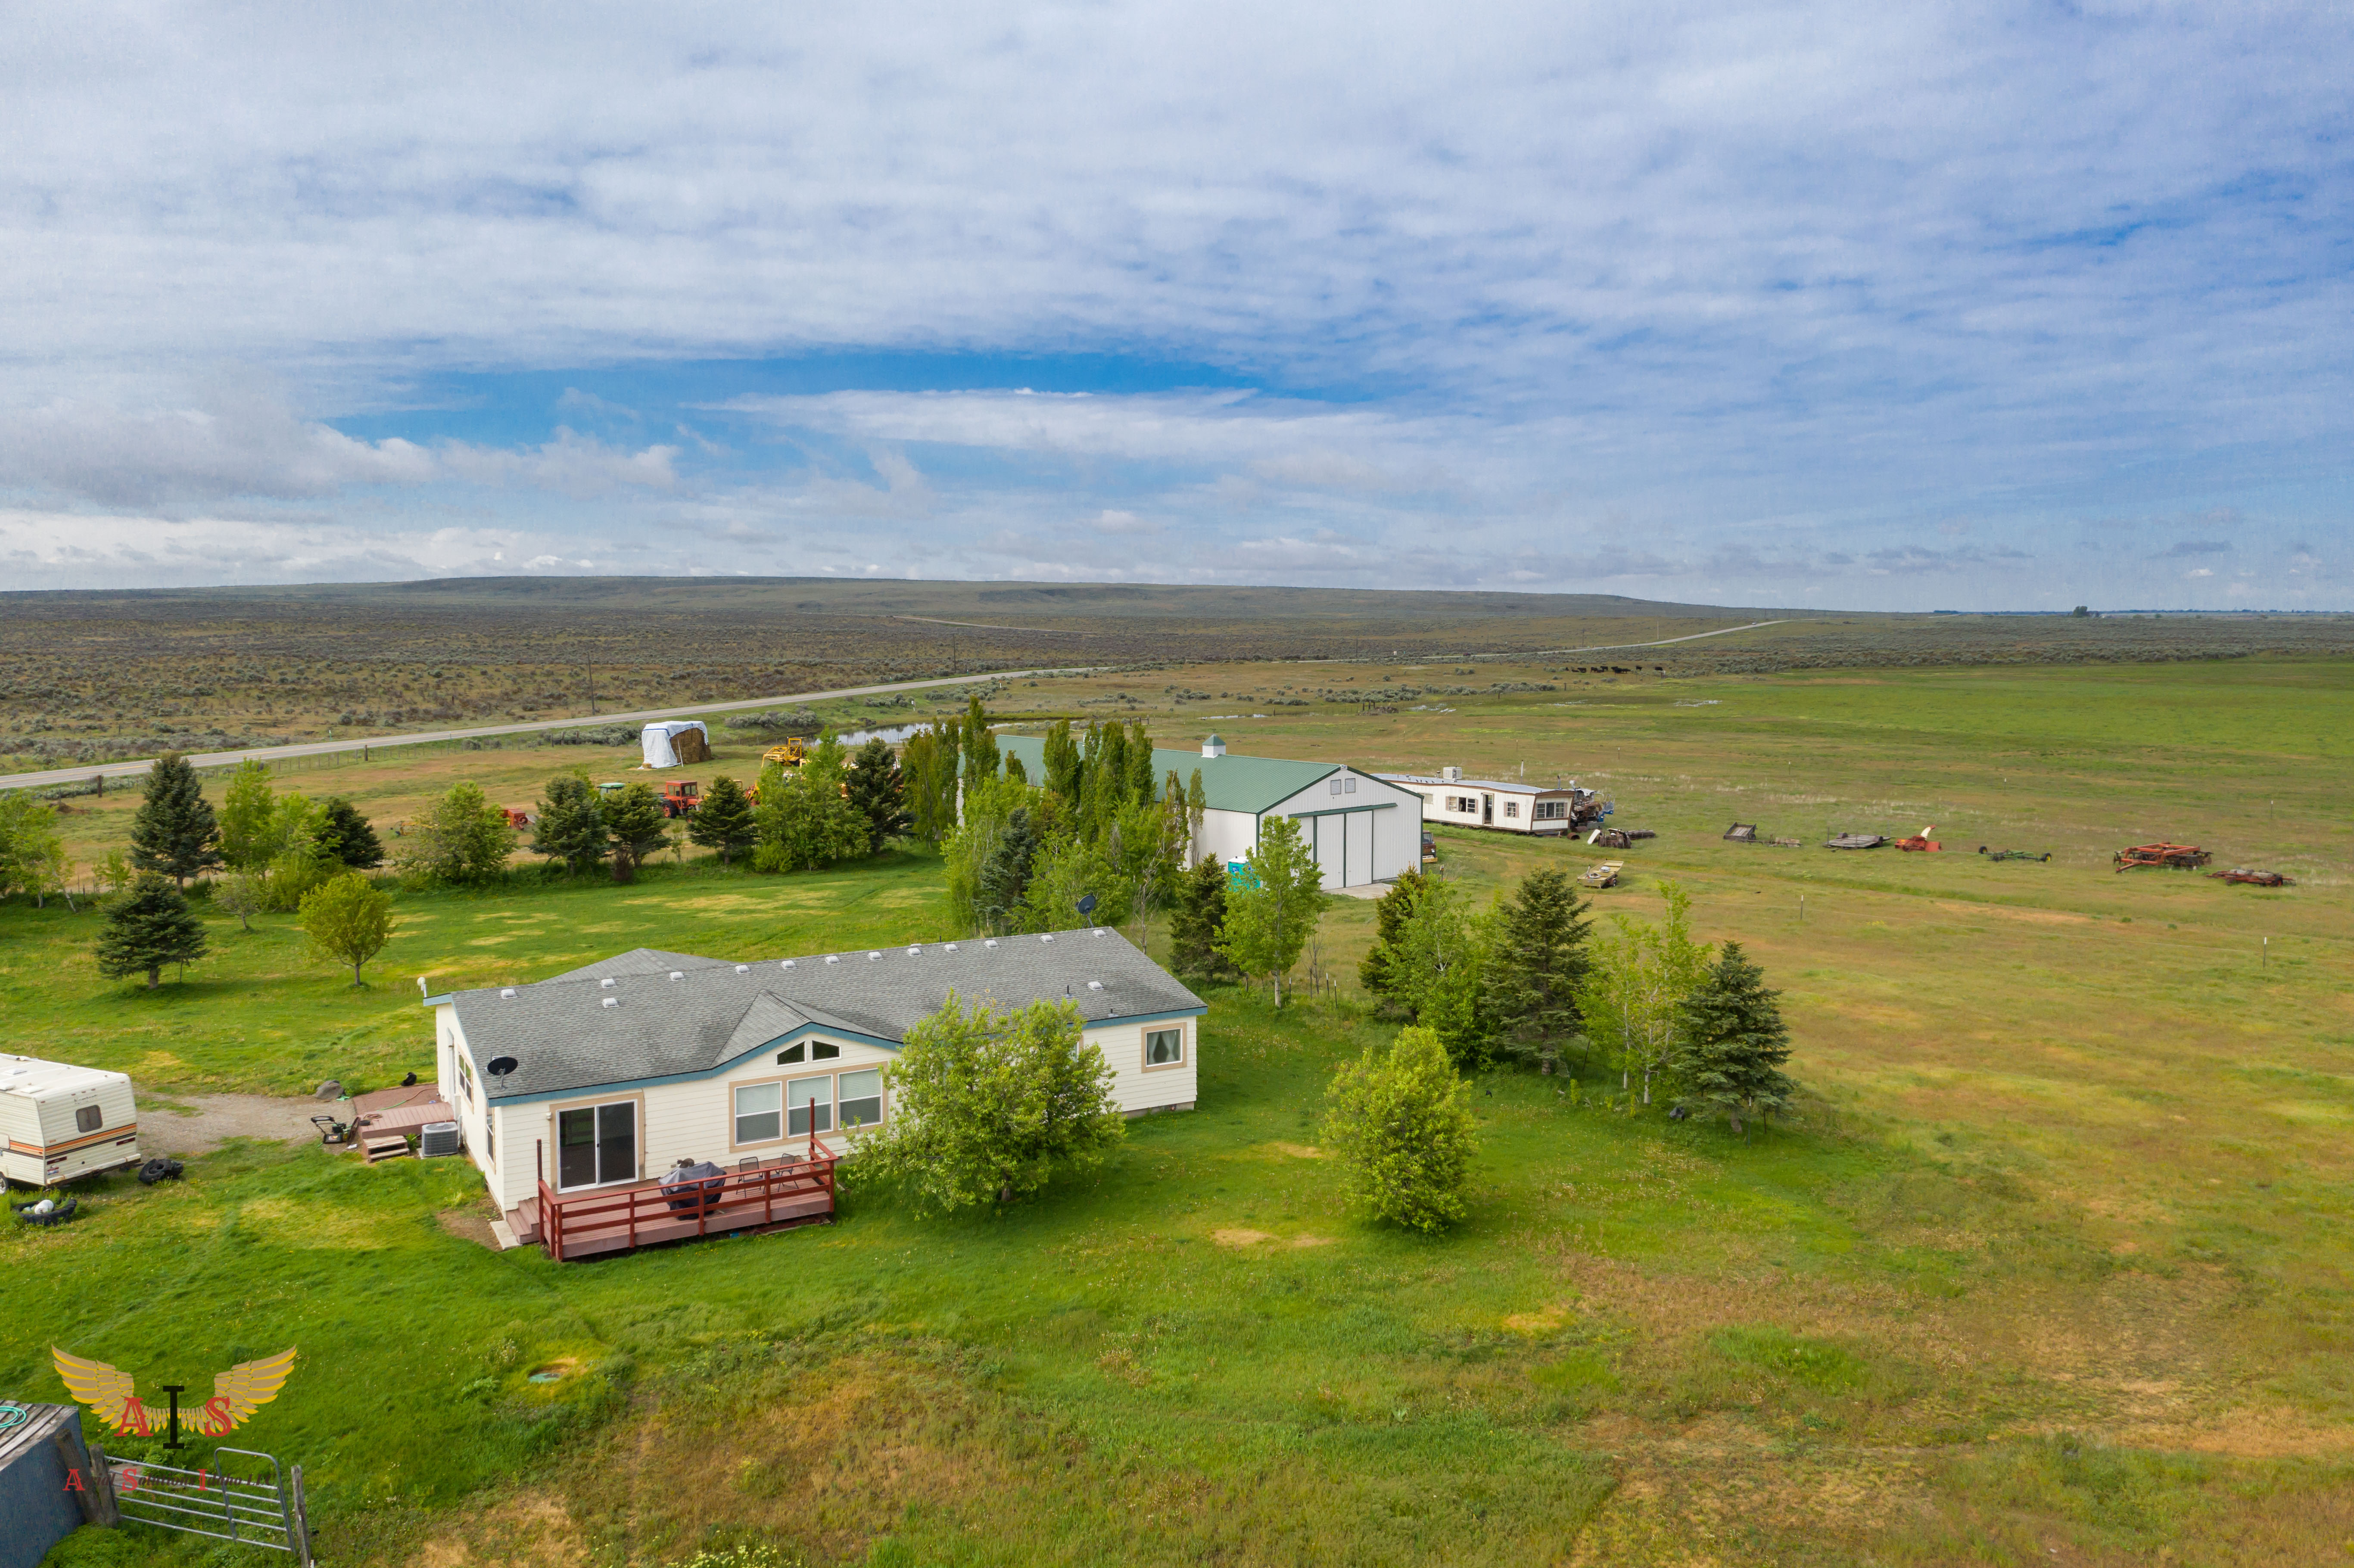 Farms Ranches Twin Falls Idaho Homes For Sale And Real Estate